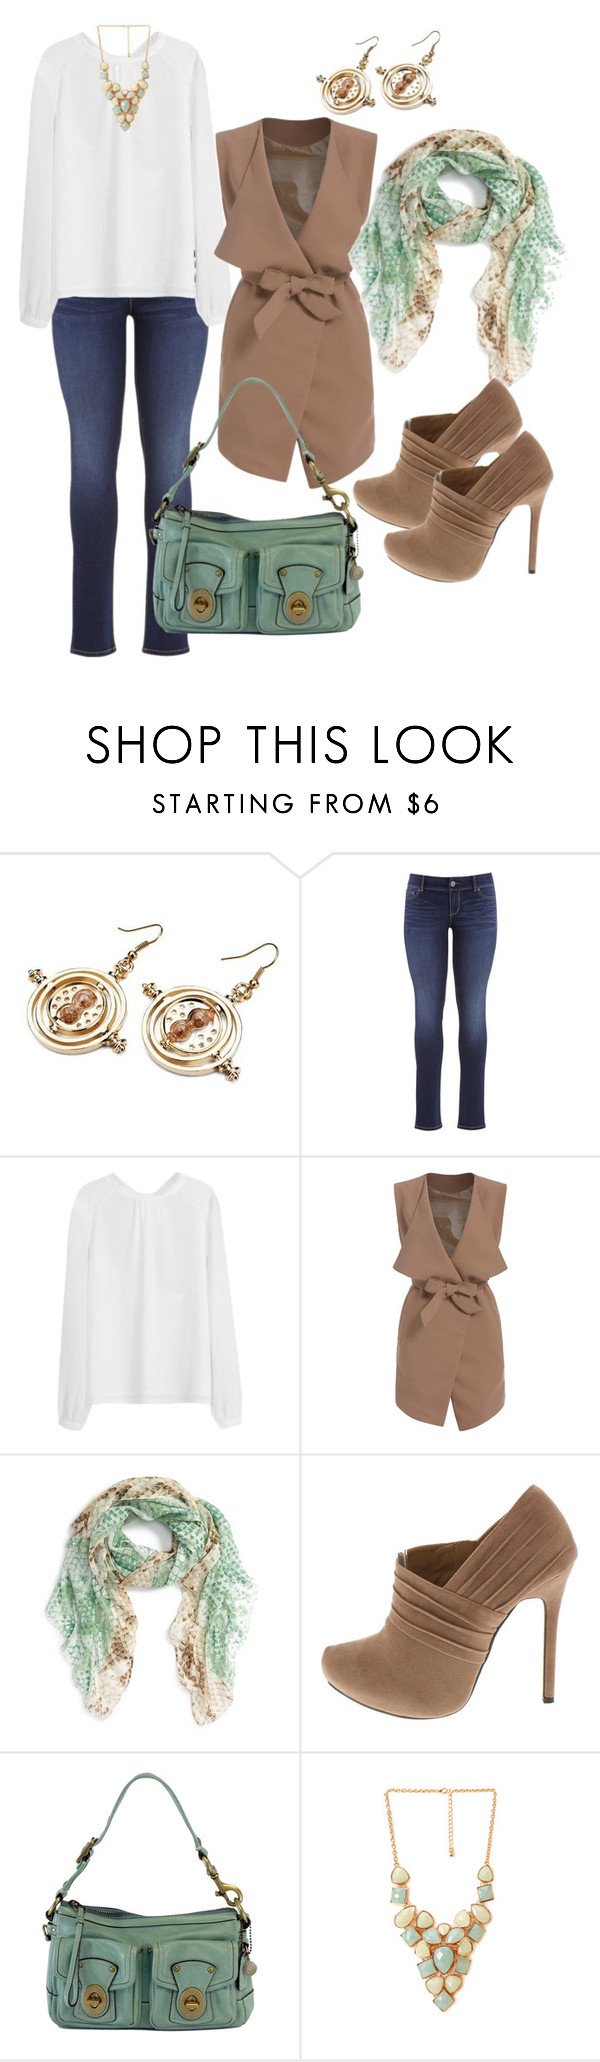 """""""Sea foam and neutrals"""" by kat9238 on Polyvore featuring maurices, Nordstrom, Karl Lagerfeld, Coach, Forever 21, women's clothing, women, female, woman and misses"""